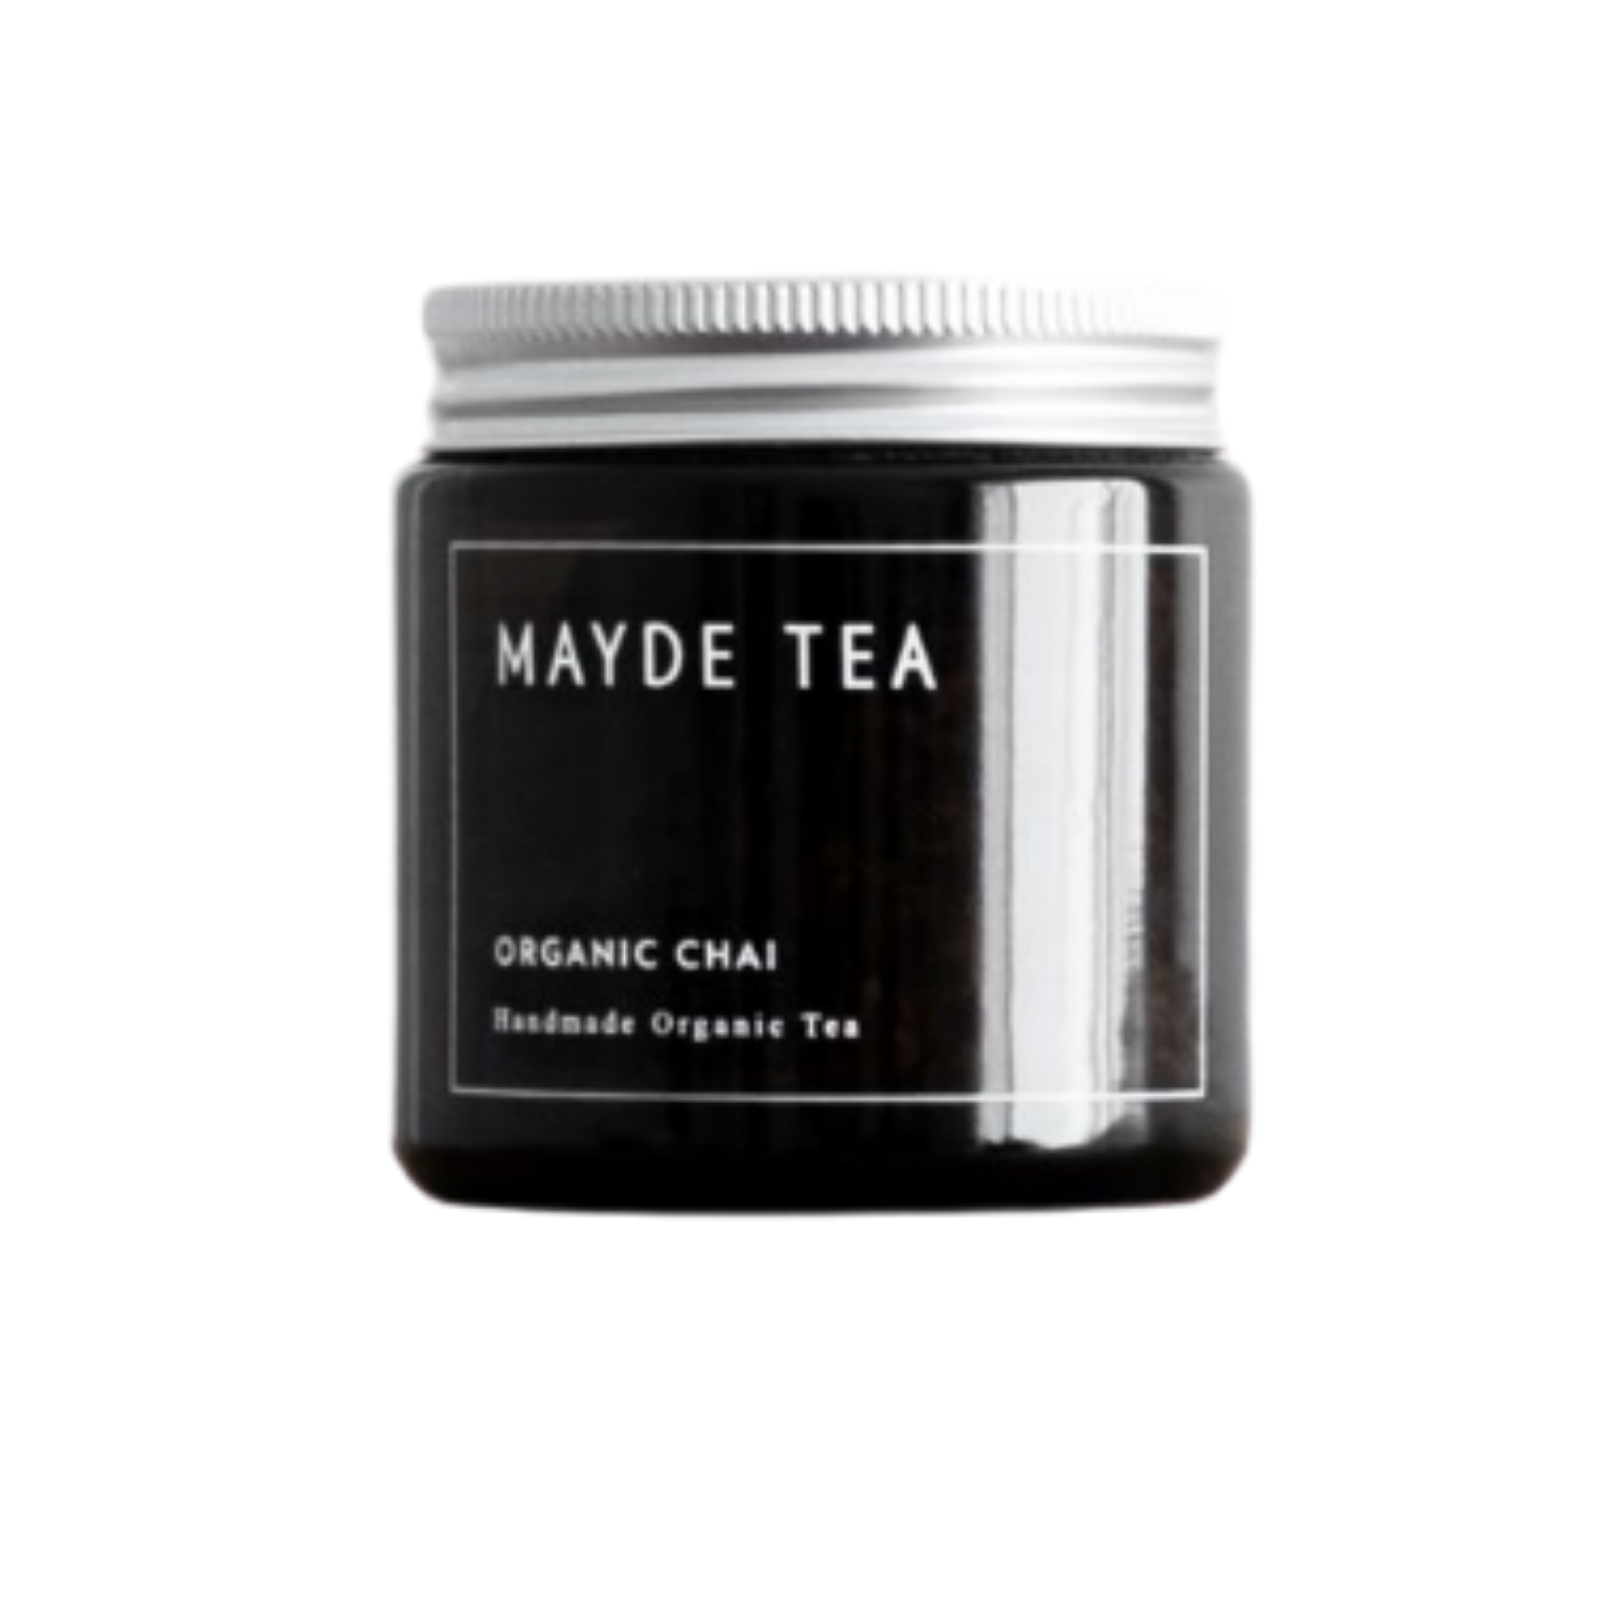 handmade organic chai tea from Australian tea producer Mayde Tea